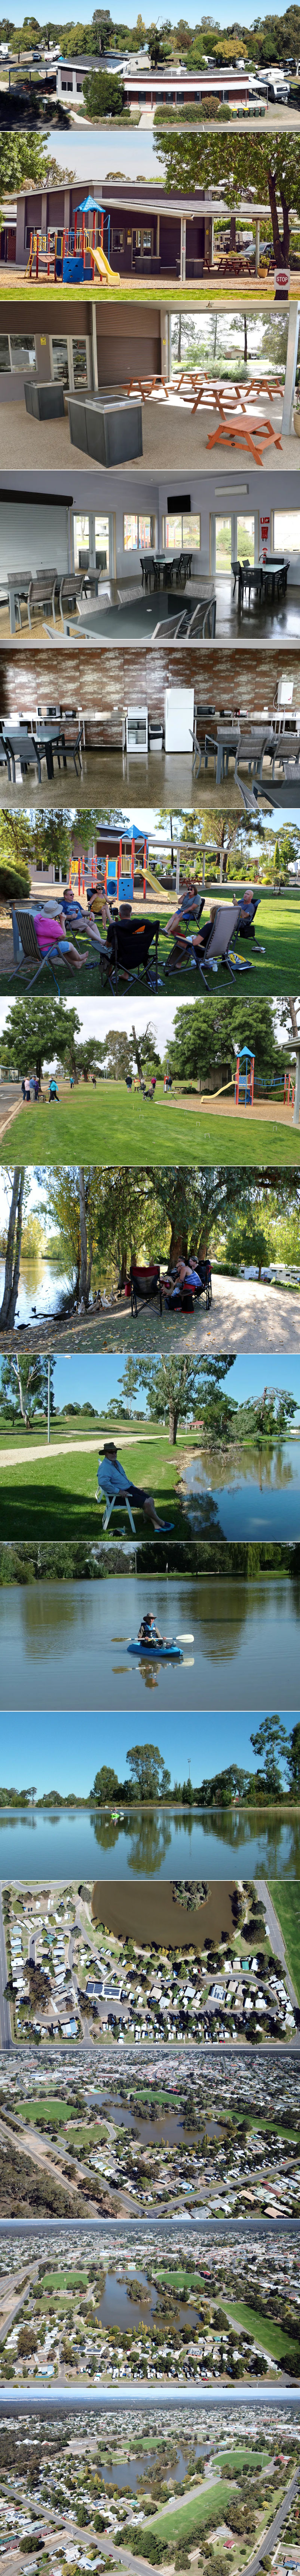 Maryborough Caravan Park - Grounds and facilities